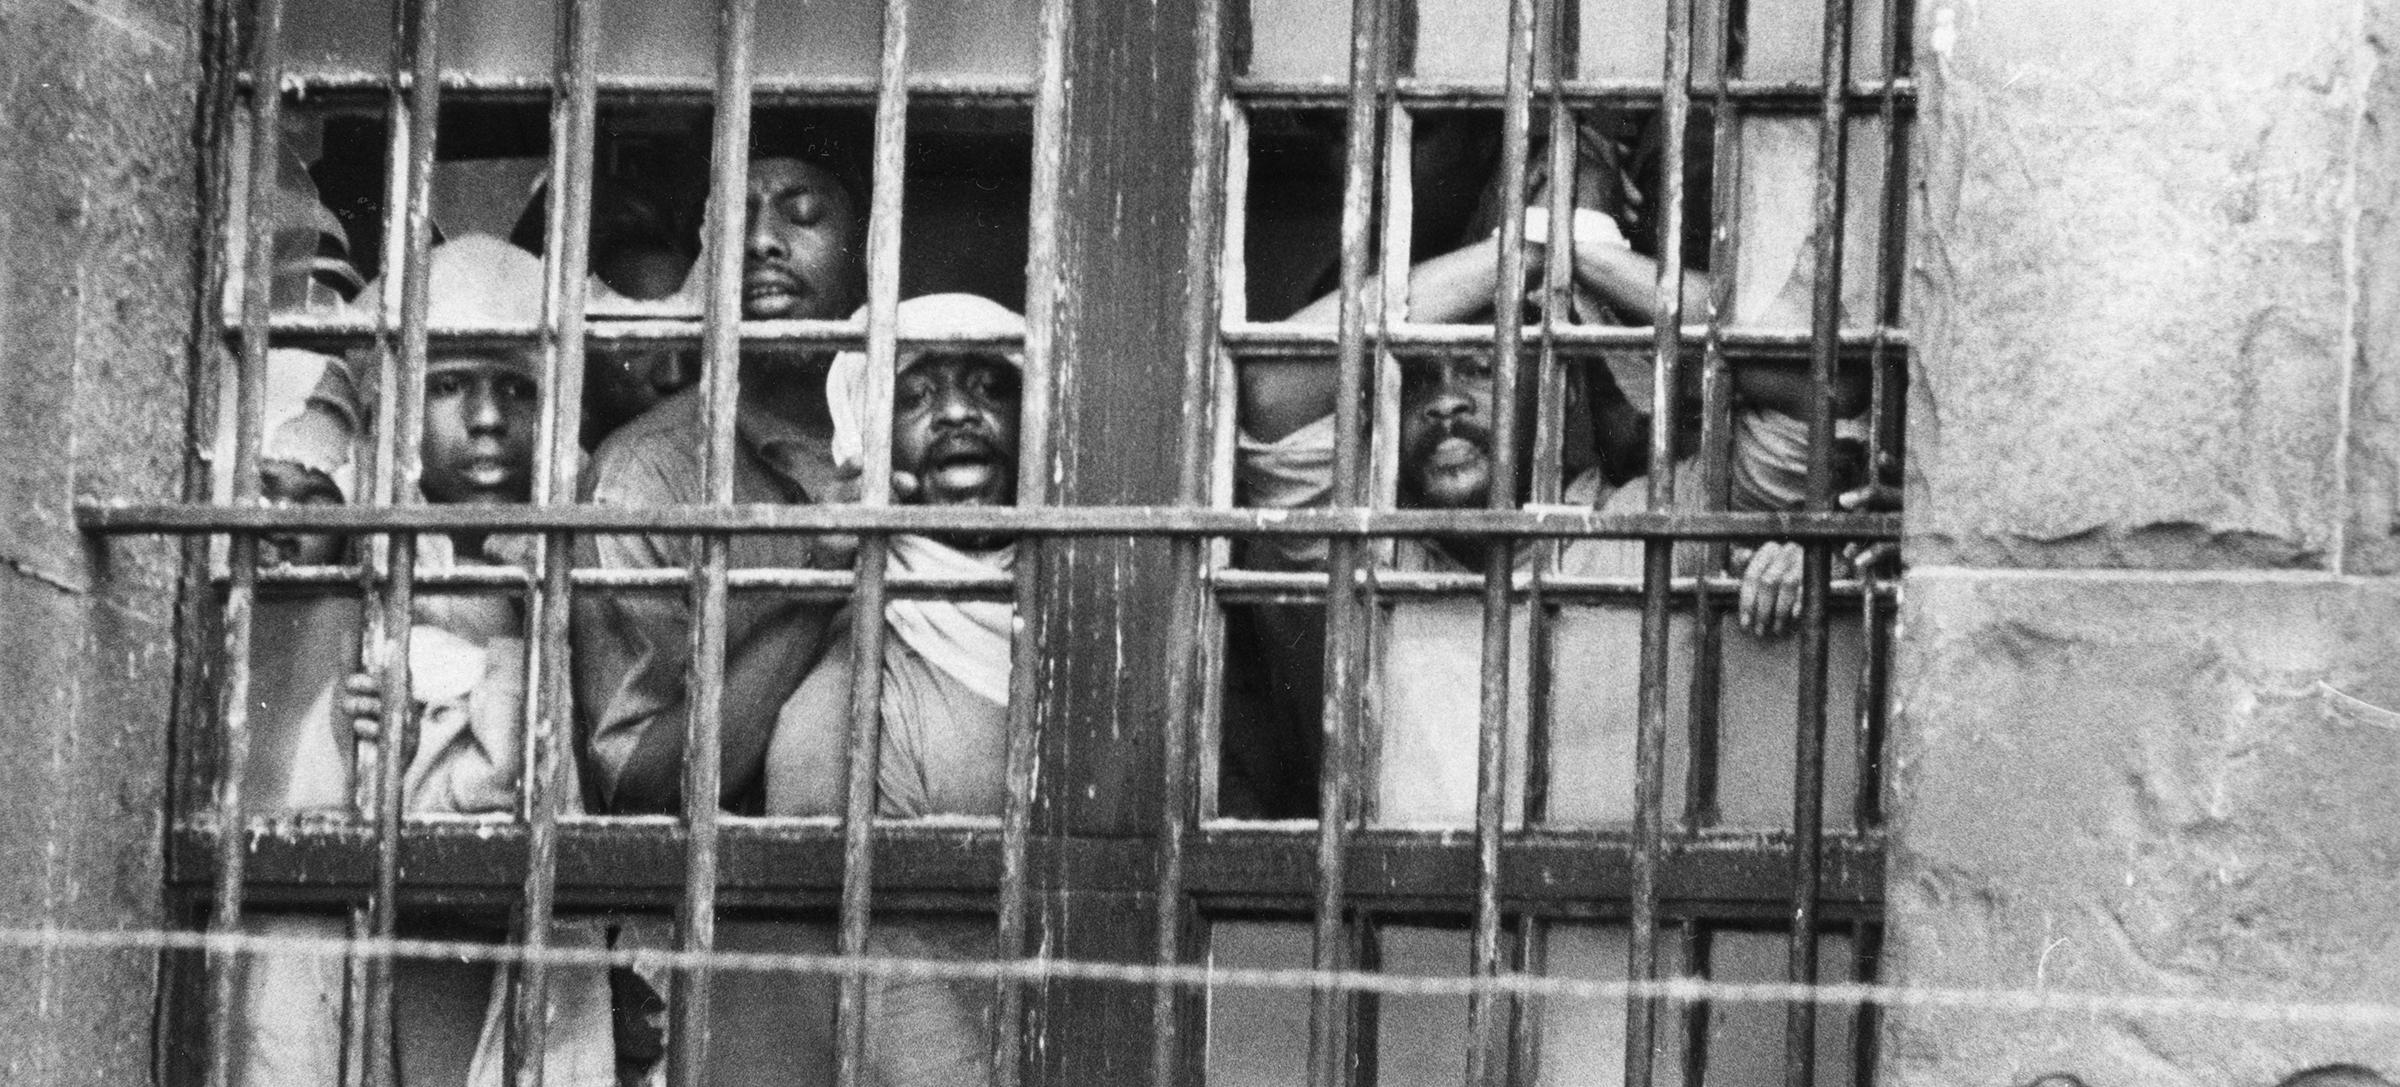 Inmates shouting through D.C. Jail window during the hostage standoff on October 11, 1972. (Photo Credit: Unknown, Courtesy DC Public Library, Star Collection, © Washington Post, All Rights Reserved.)